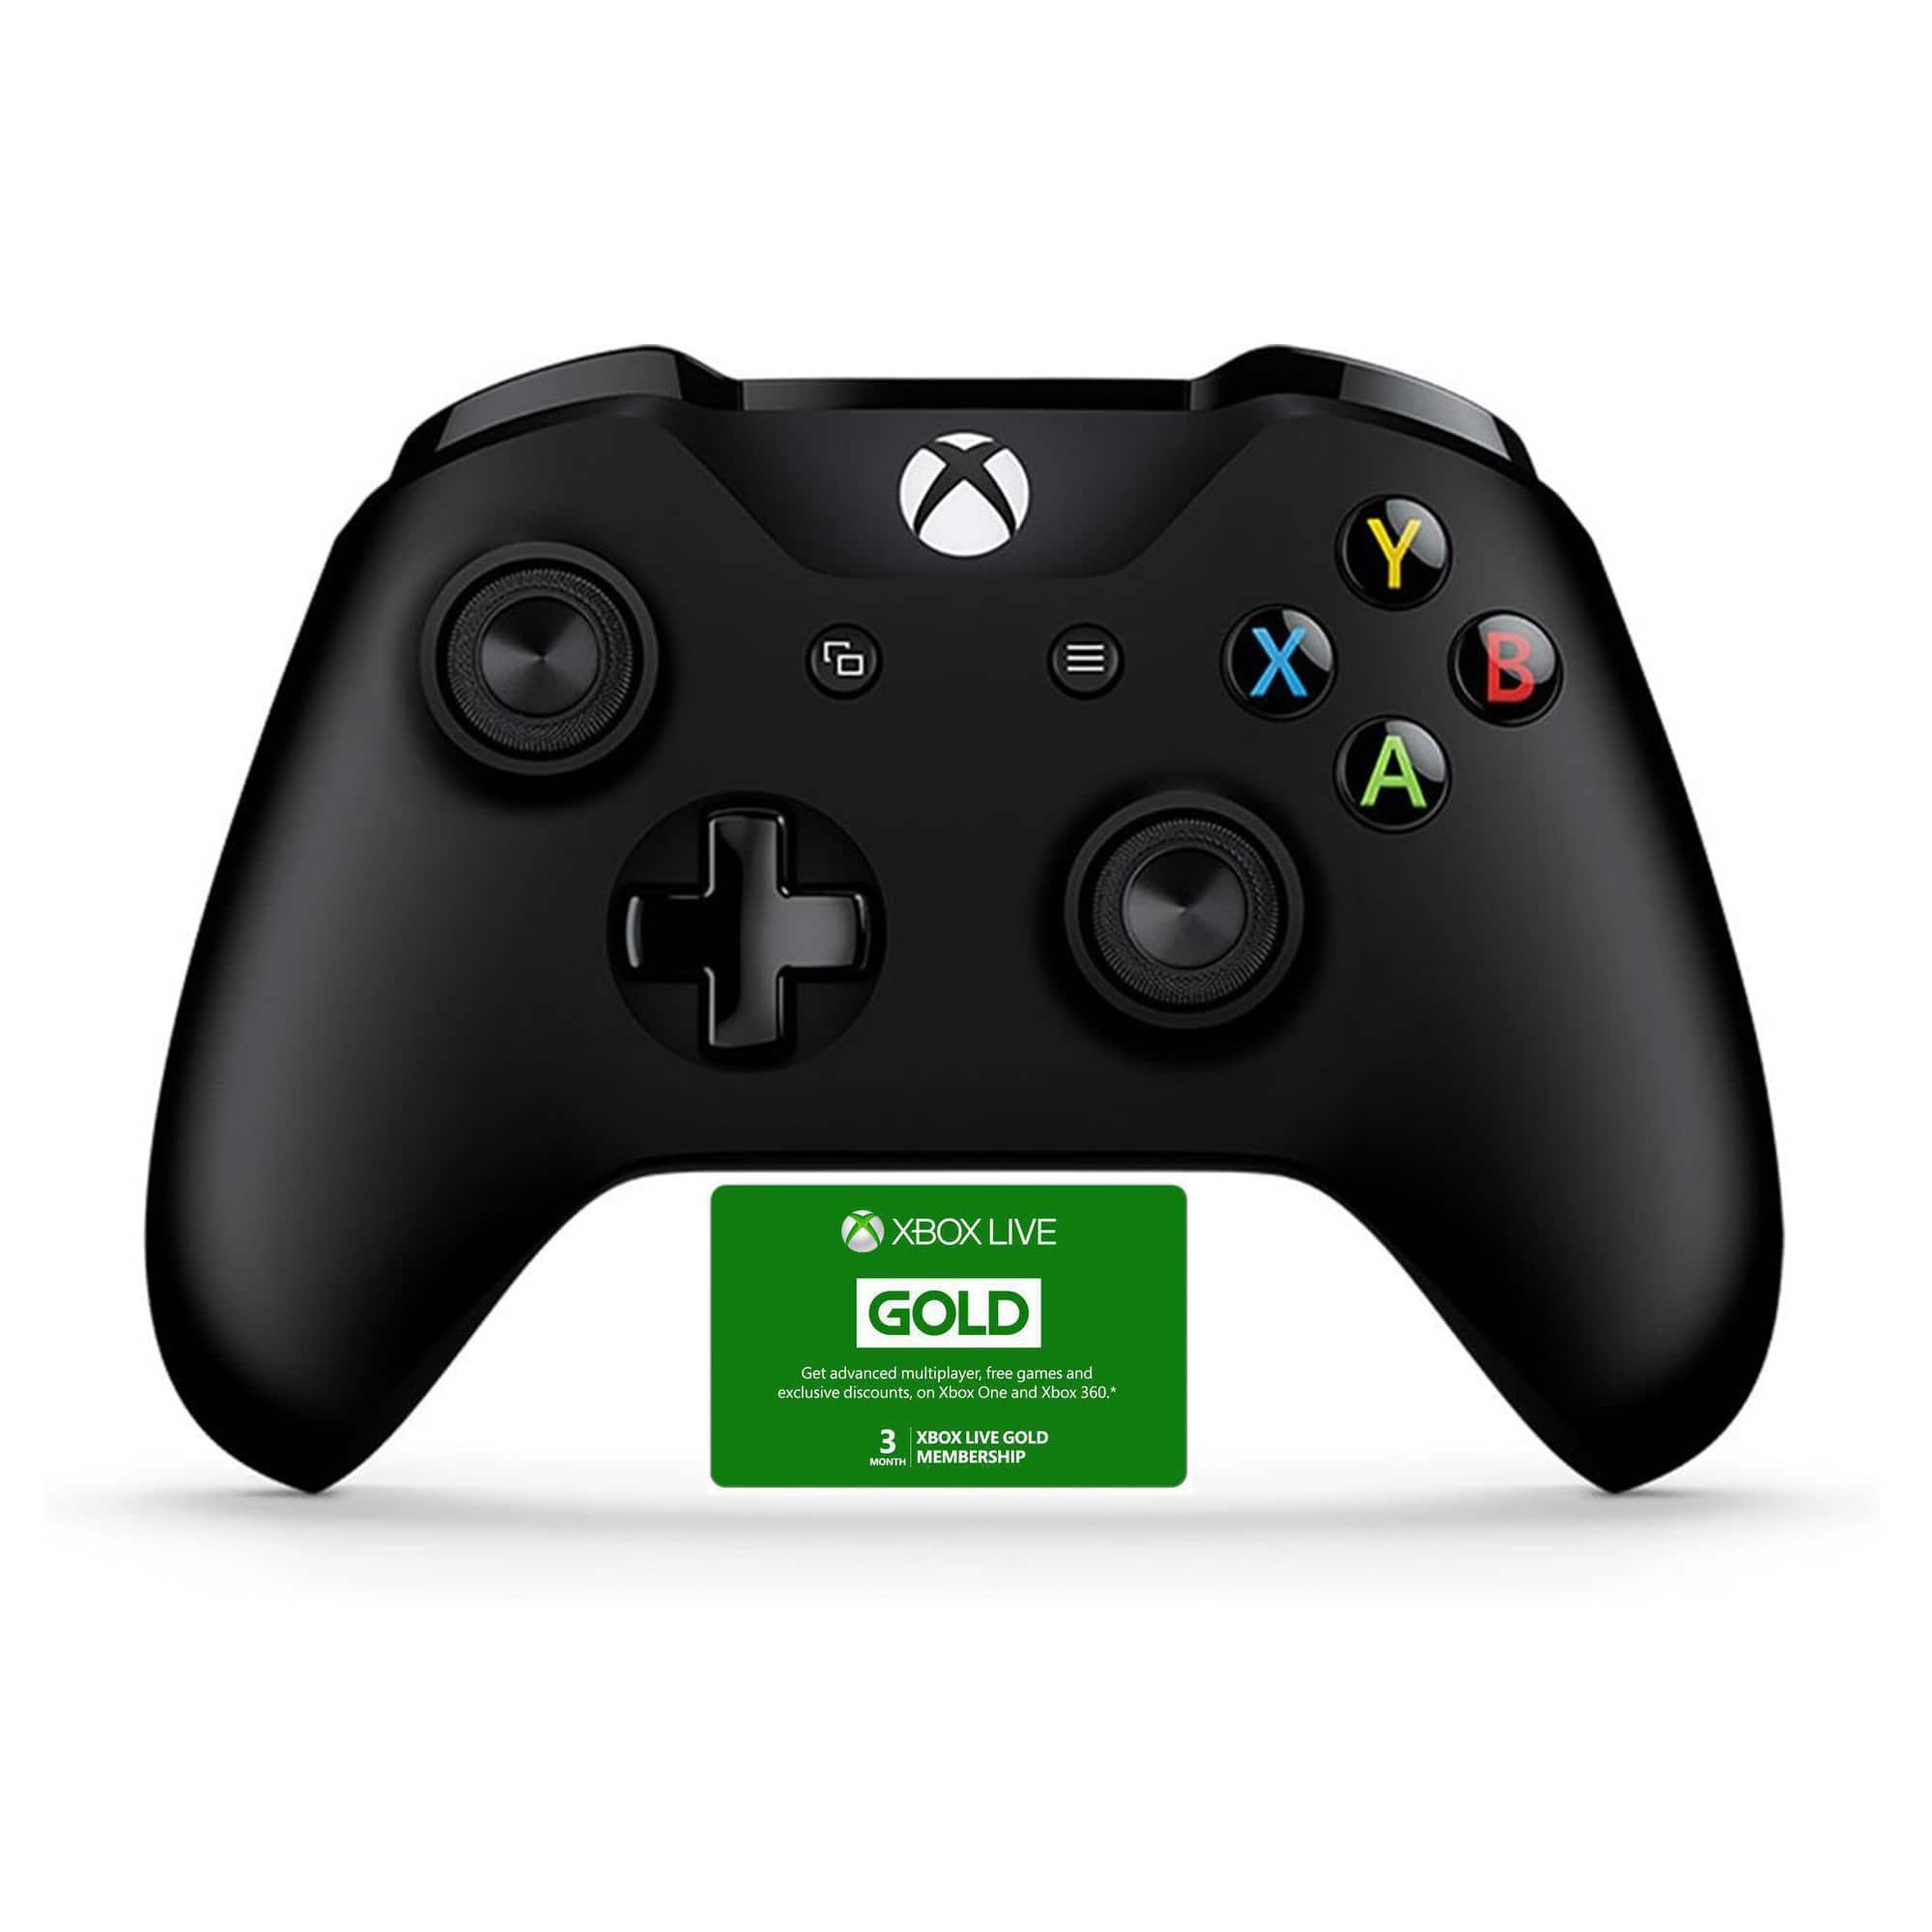 Microsoft Xbox One Wireless Controller (Black or White) + 3-Months Xbox Live Gold Membership (Email Delivery) $43.99 + Free Shipping